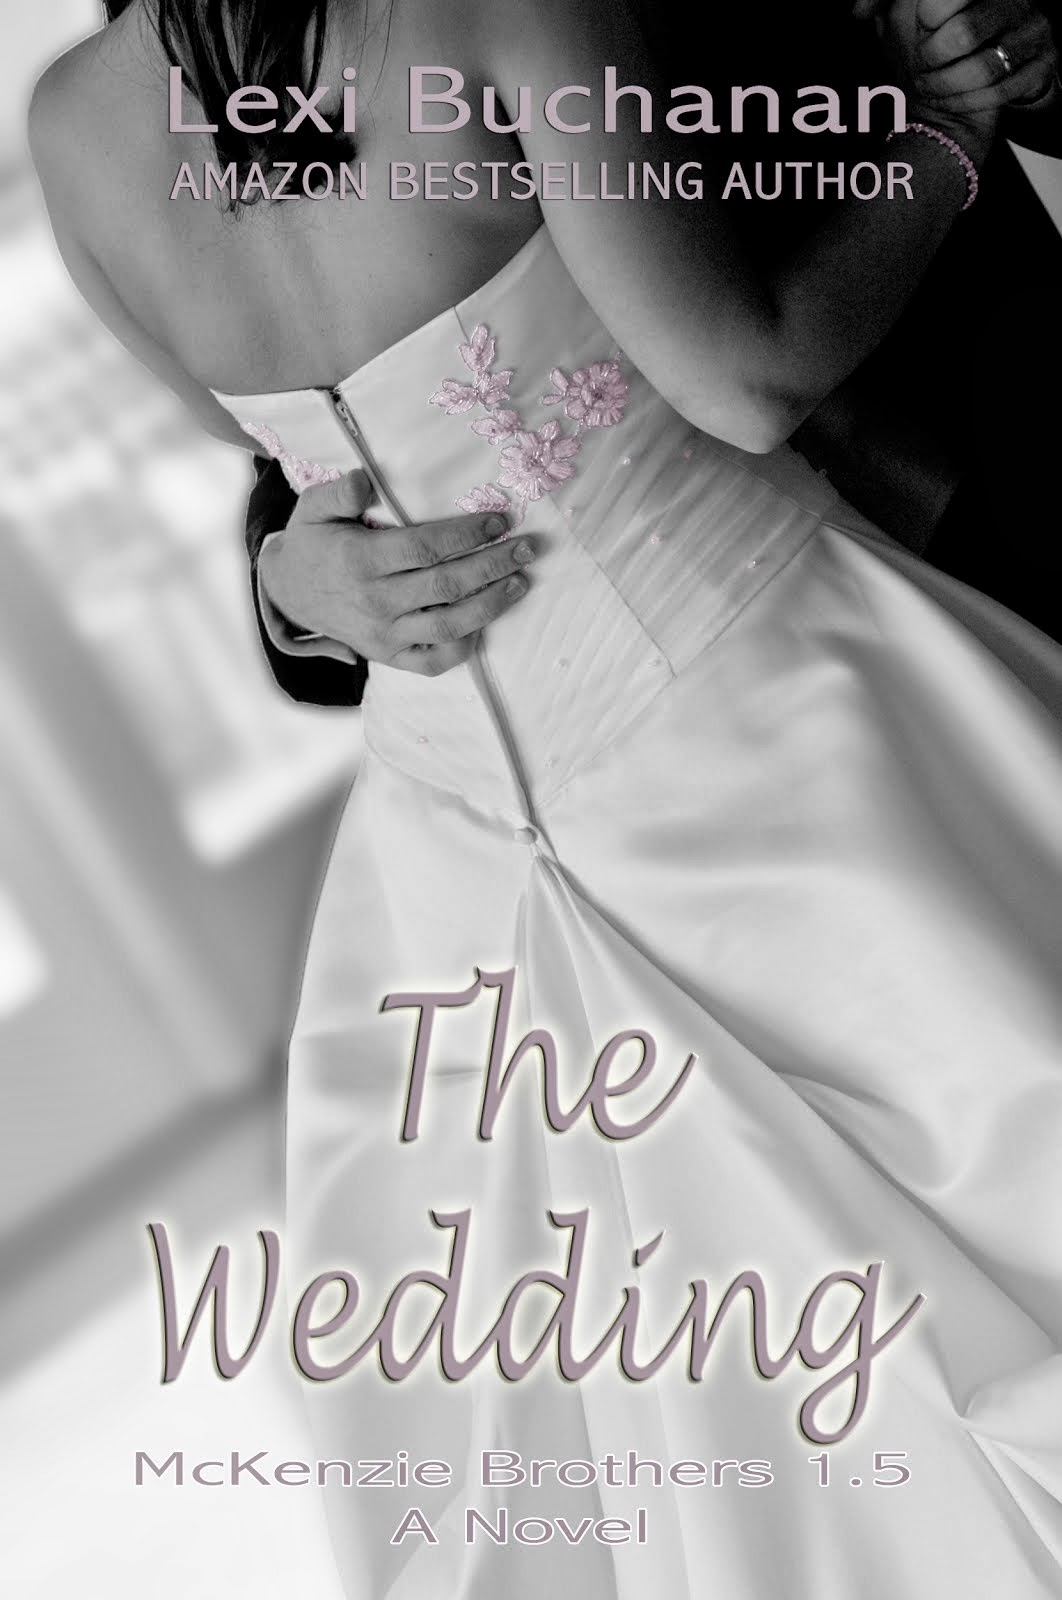 The Wedding [McKenzie Brothers 1.5]